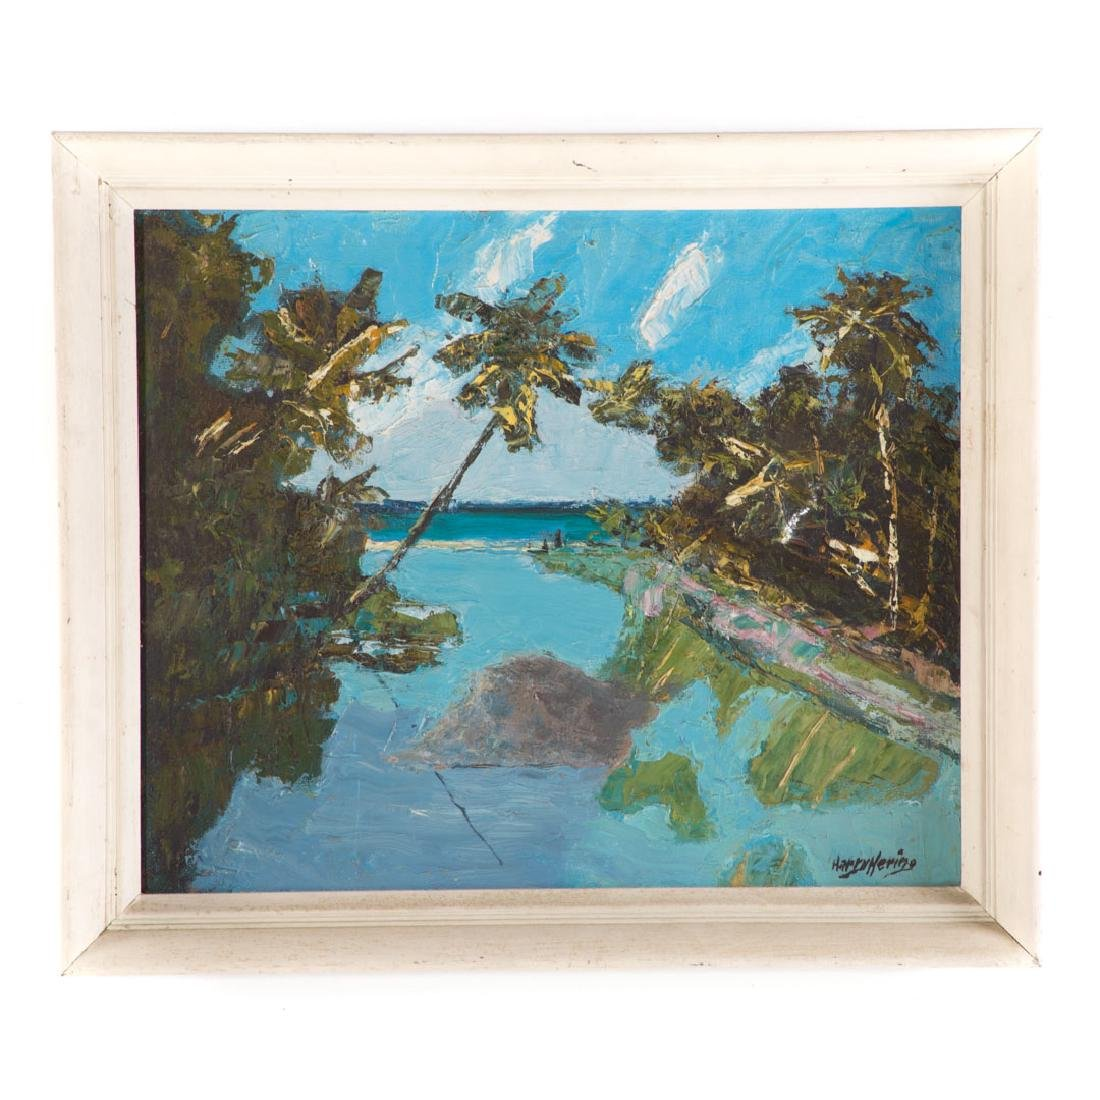 Harry Hering. Sunny Inlet, oil on board